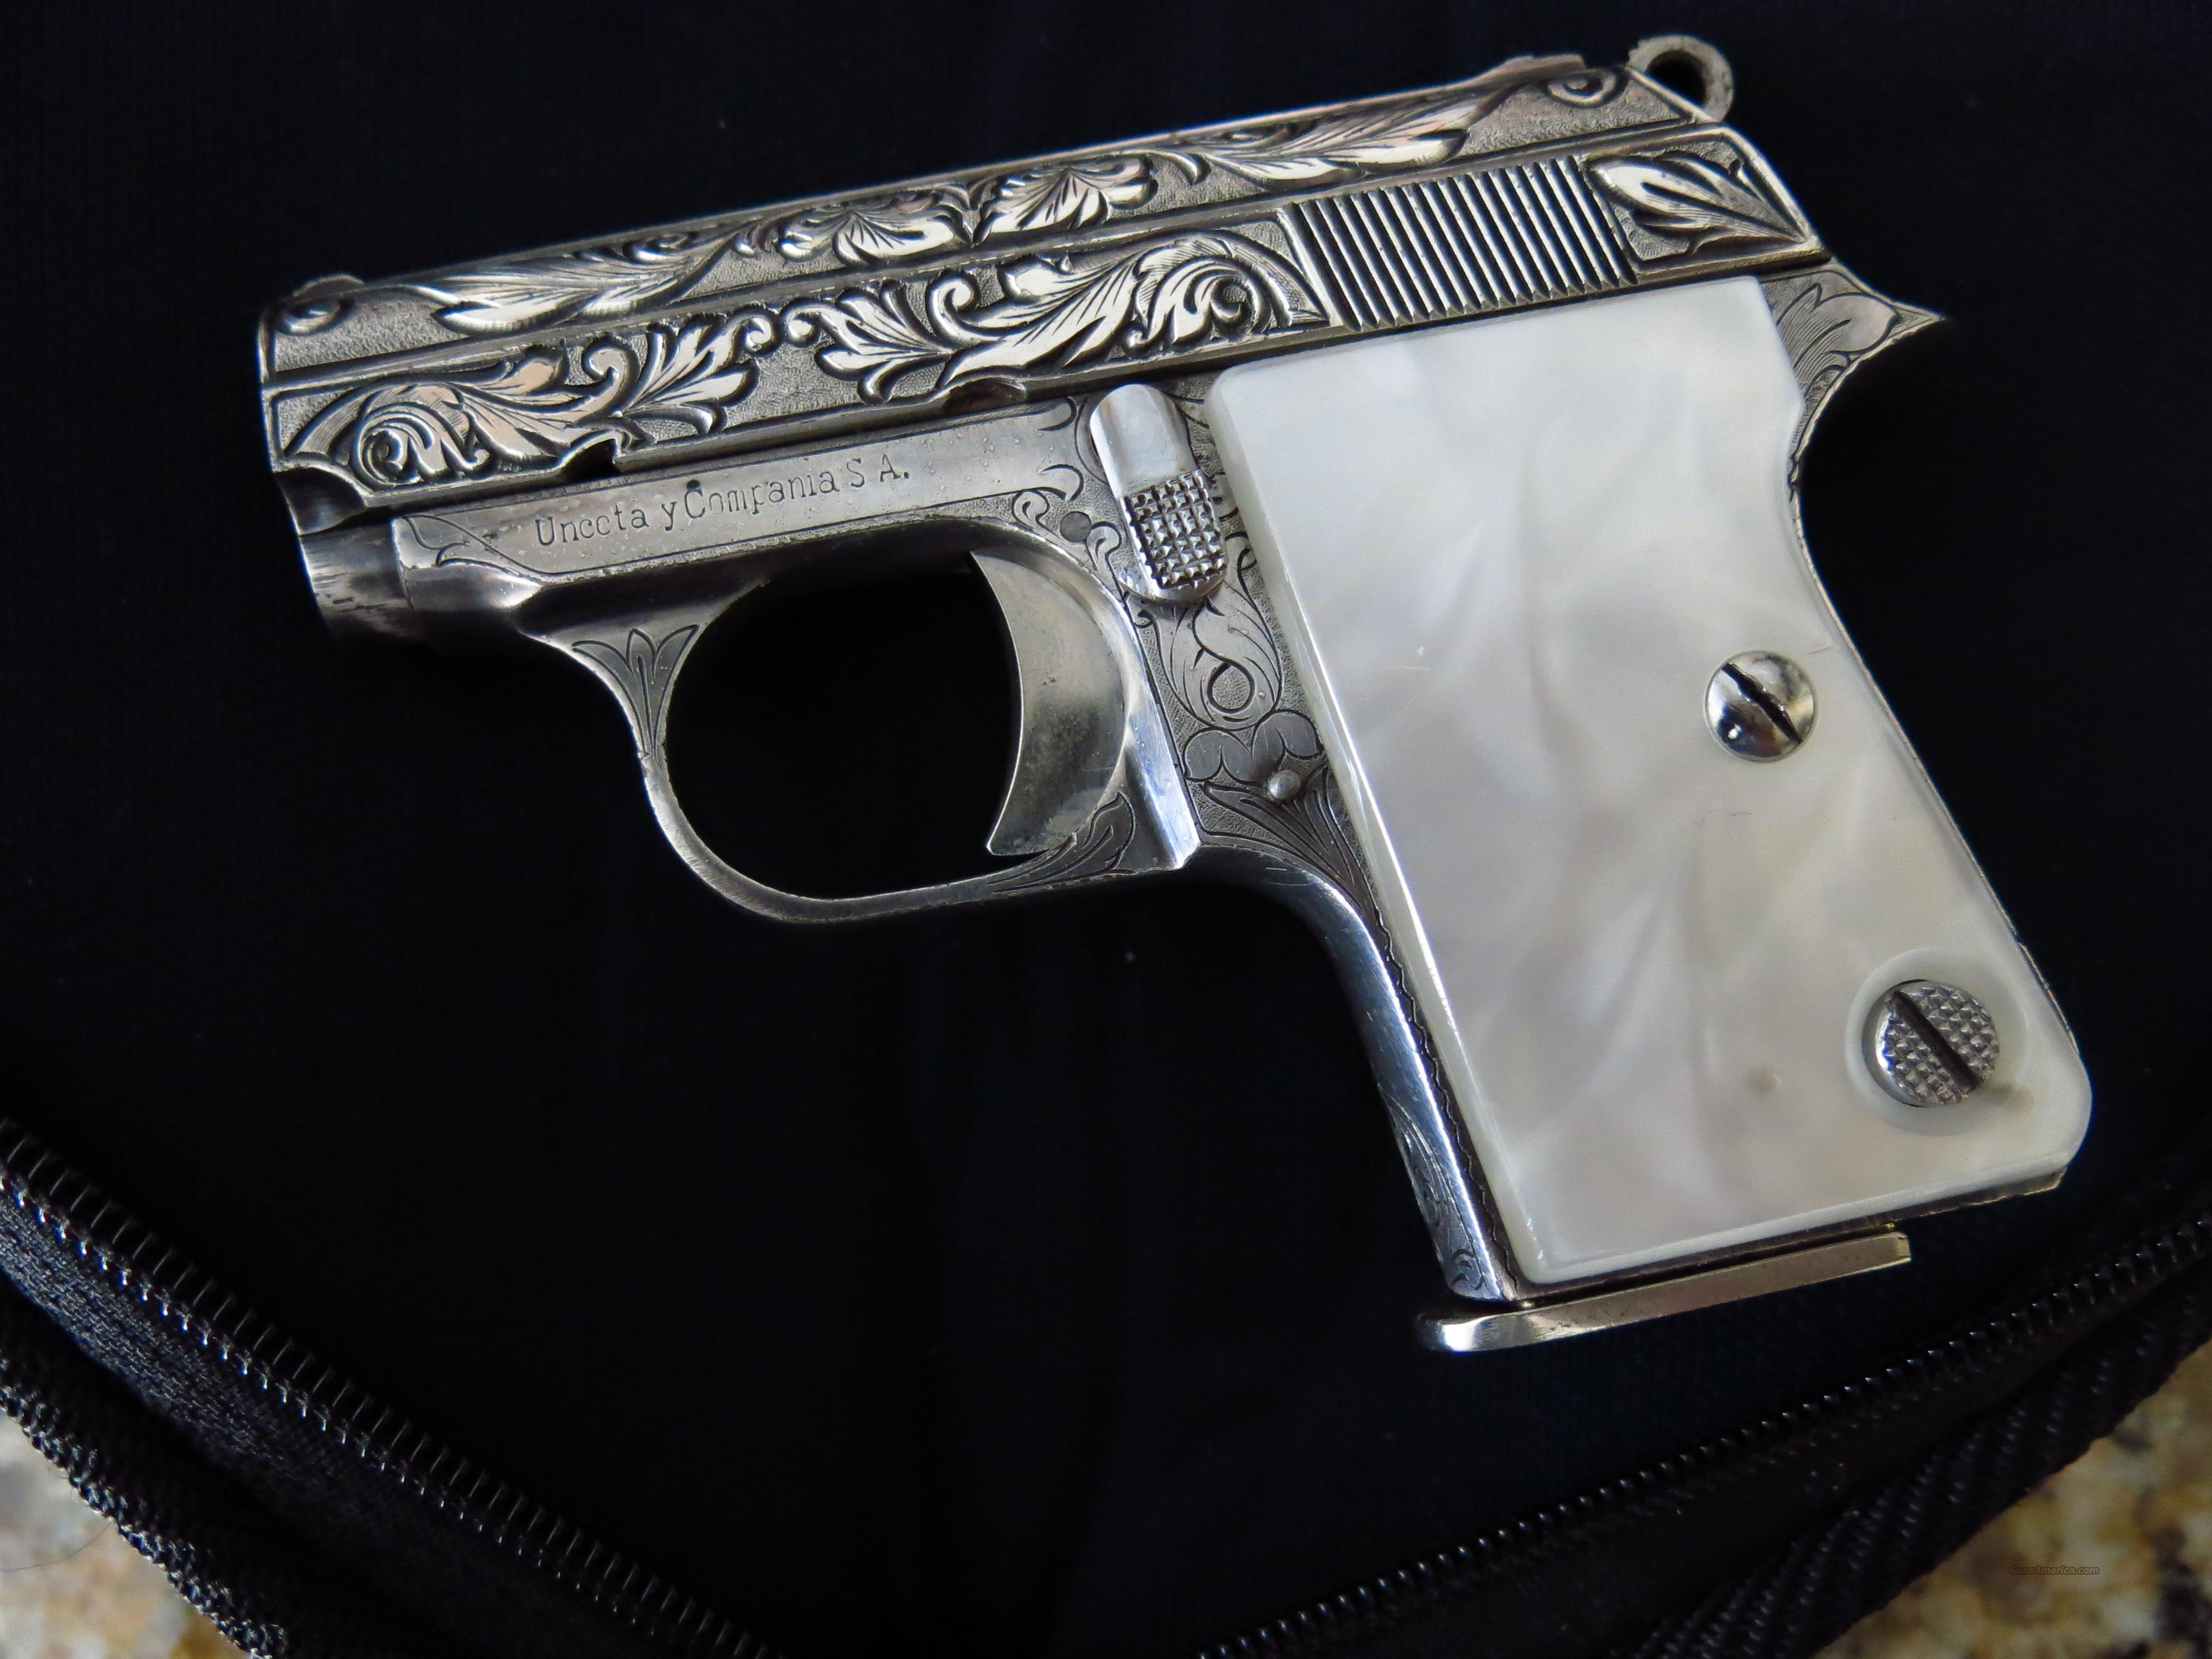 ASTRA CUB 25 ACP FACTORY ENGRAVED, SILVER PLATED  Guns > Pistols > Astra Pistols